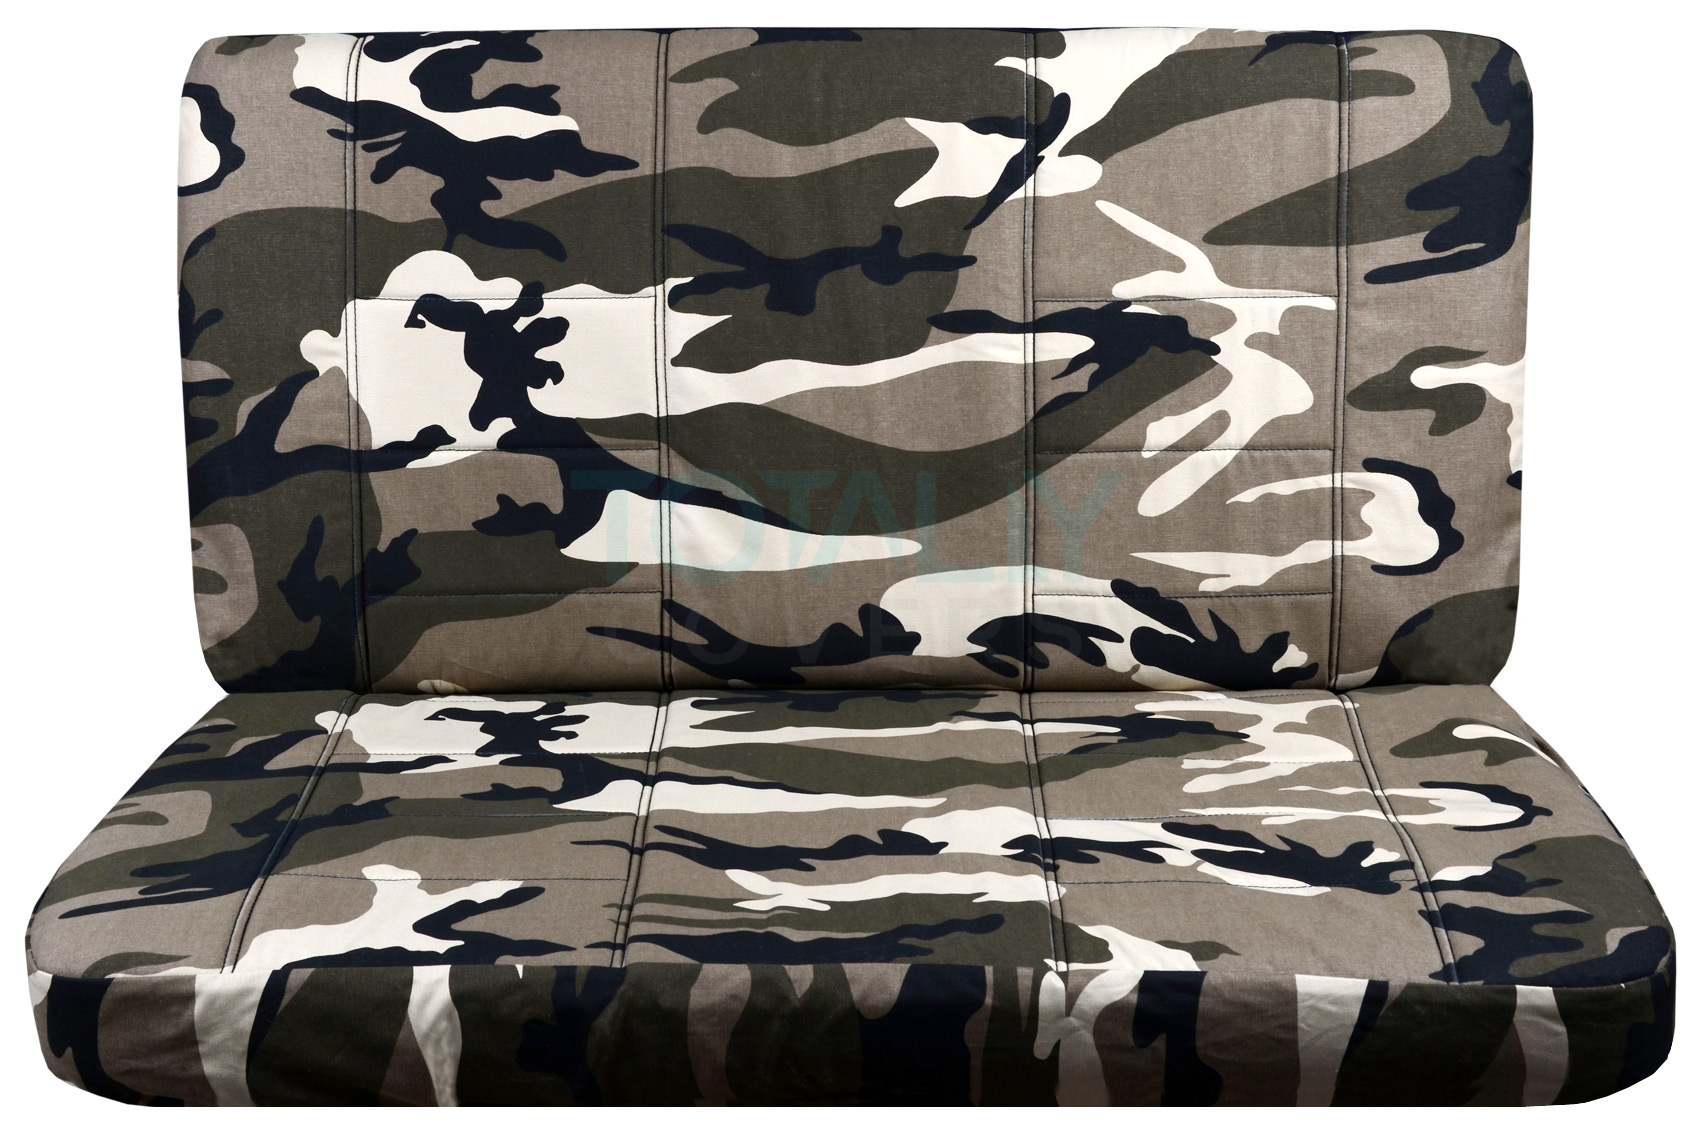 camouflage bench seat covers for car truck van suv 60 40 40 20 40 50 50 or solid ebay. Black Bedroom Furniture Sets. Home Design Ideas